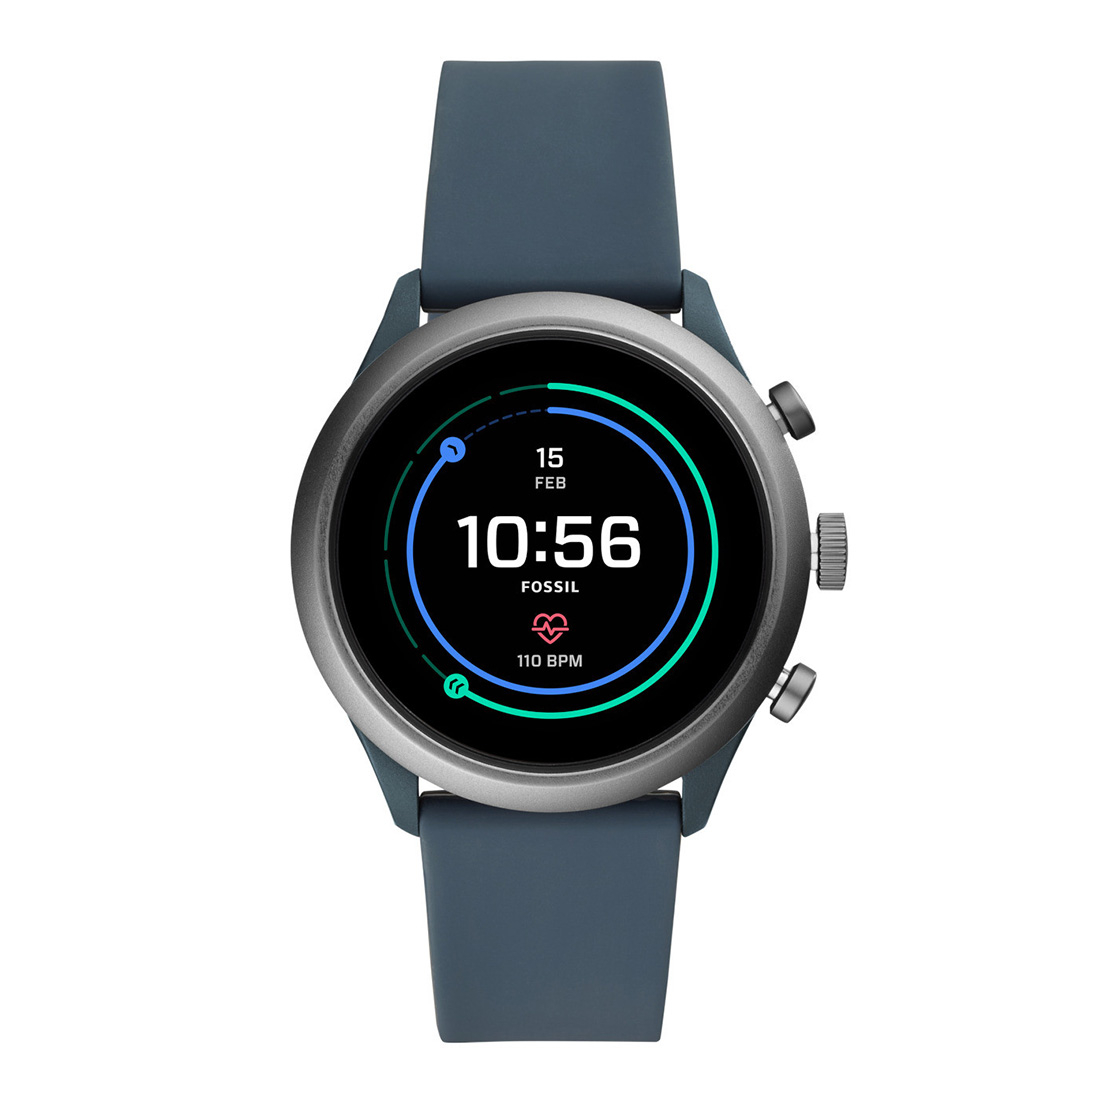 Smartwatch Fossil - Sport Ftw4021 Grey imagine